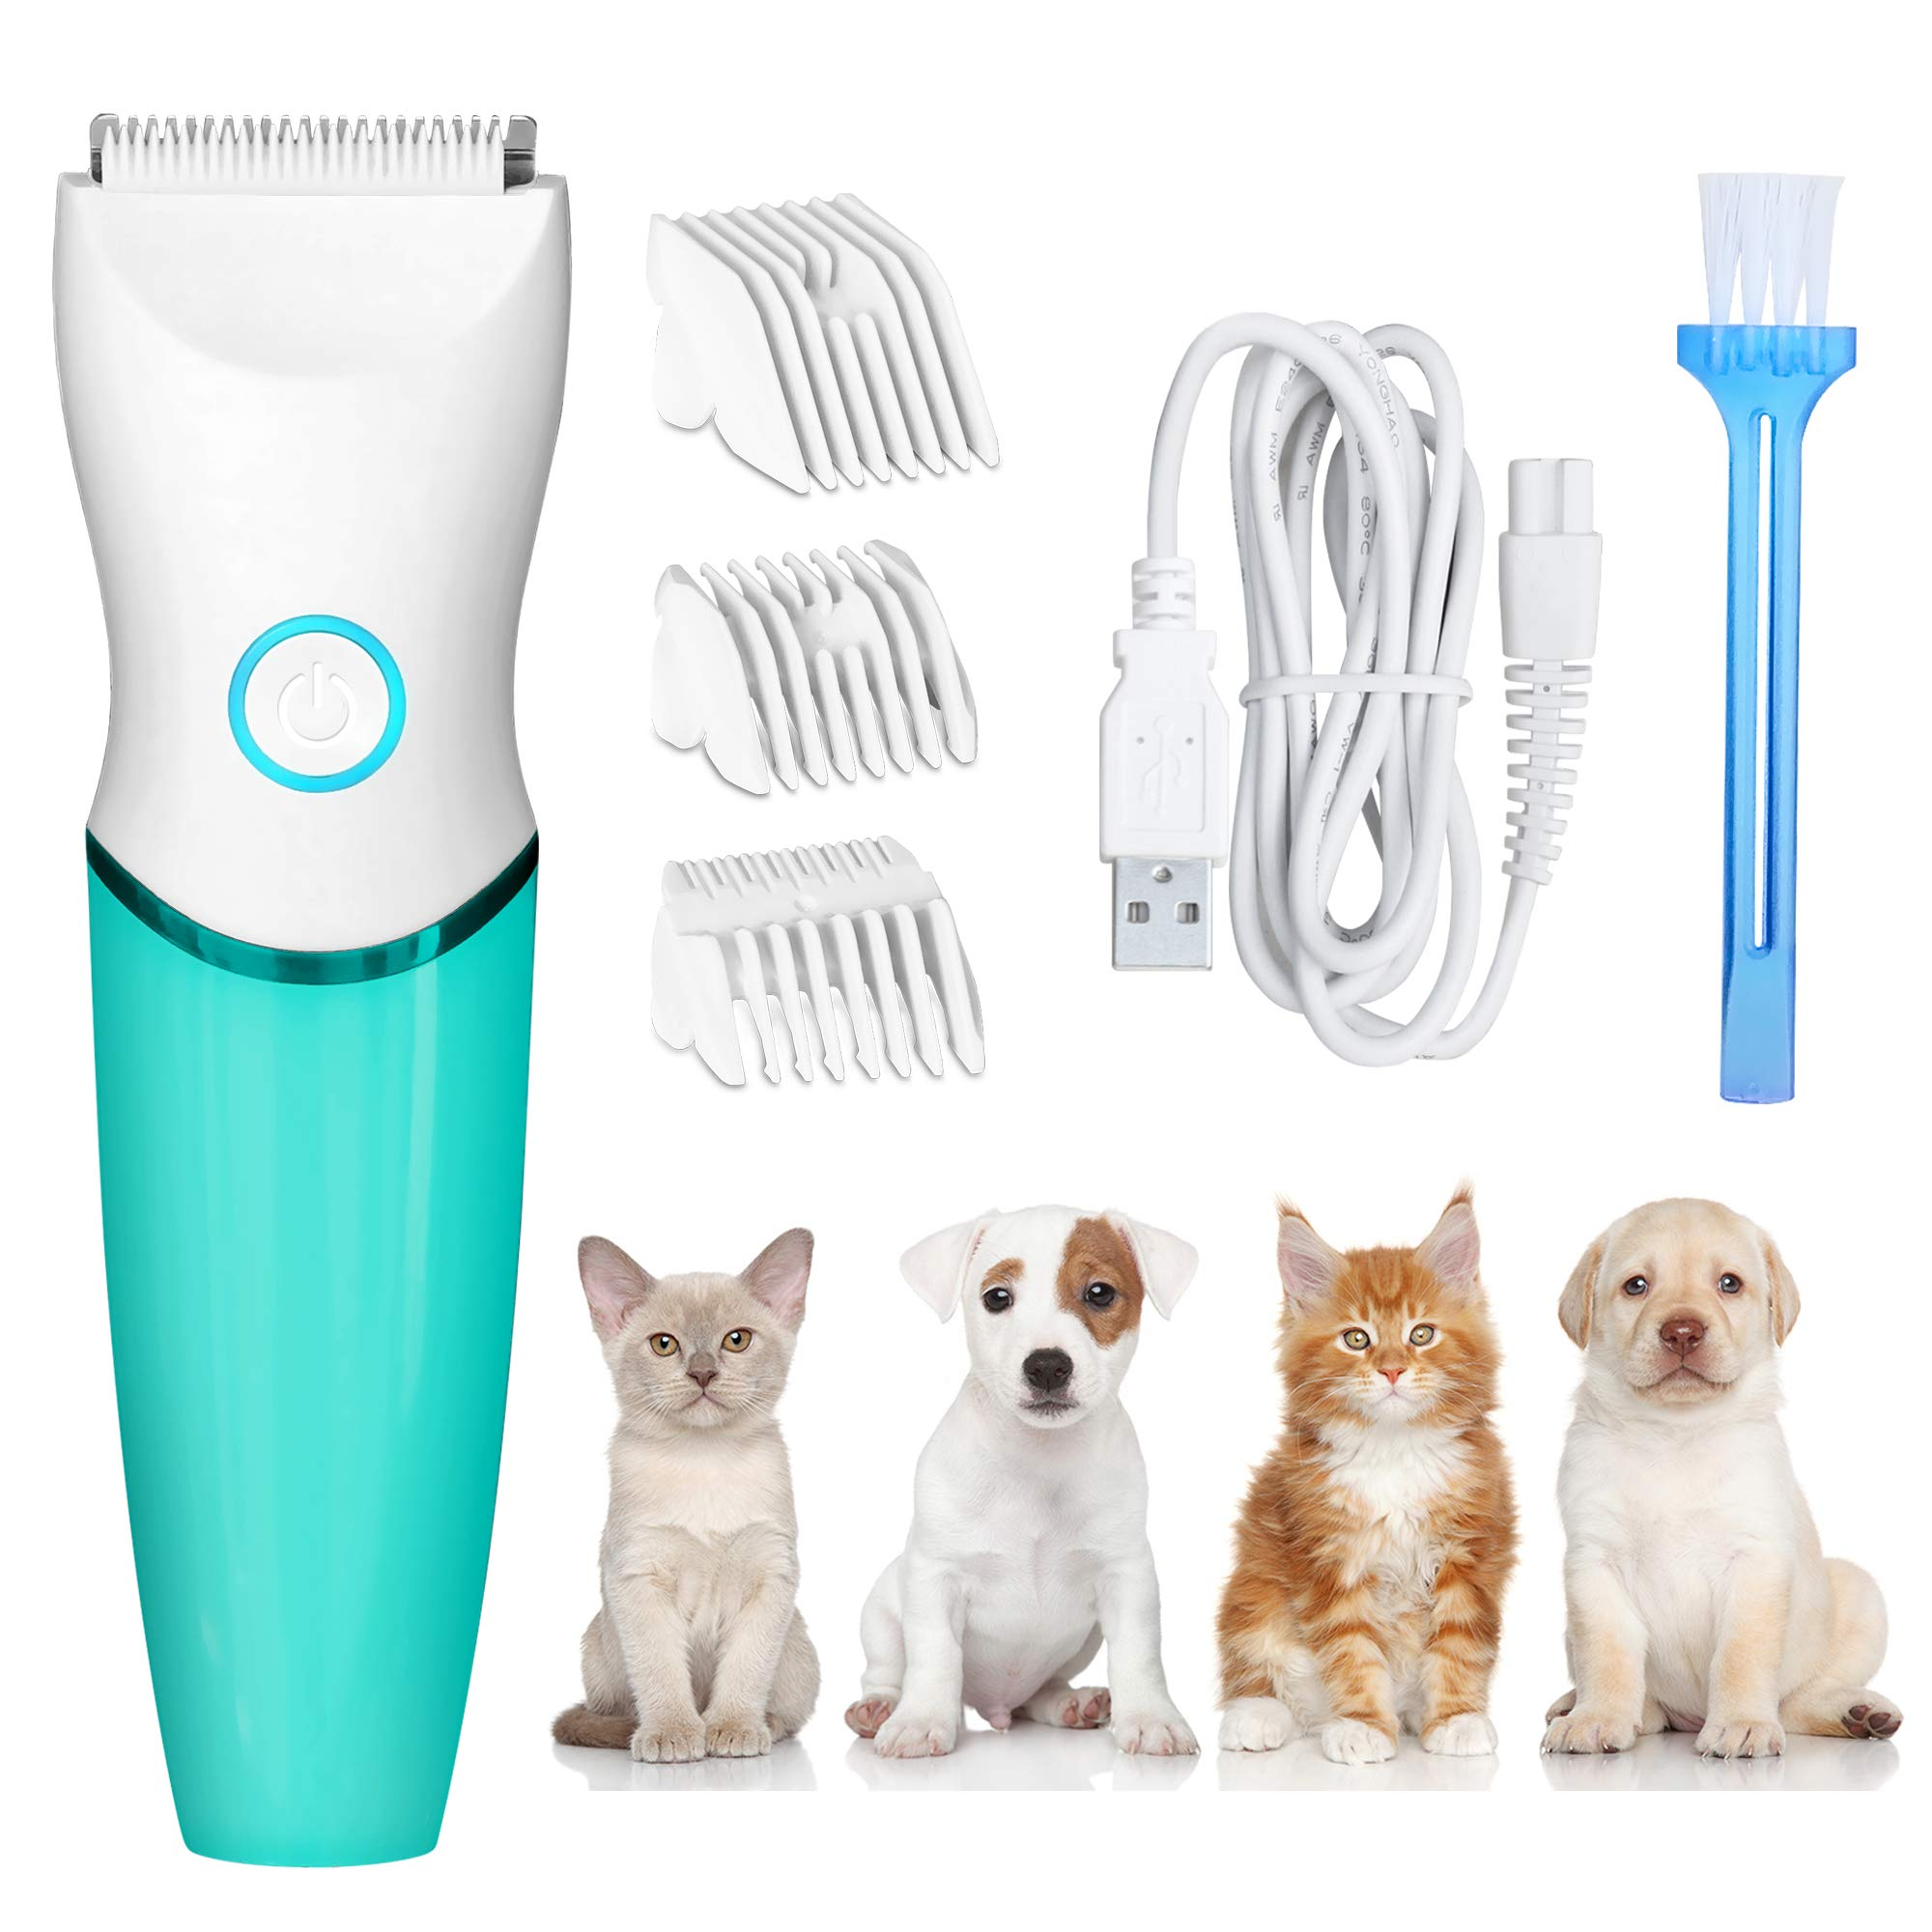 Dog Clippers Pet Grooming Kit Cordless Low Noise Waterproof Dog Hair Clipper Trimmer Shaver Rechargeable with 3 Guide Combs for Dogs Puppy Cats Pets